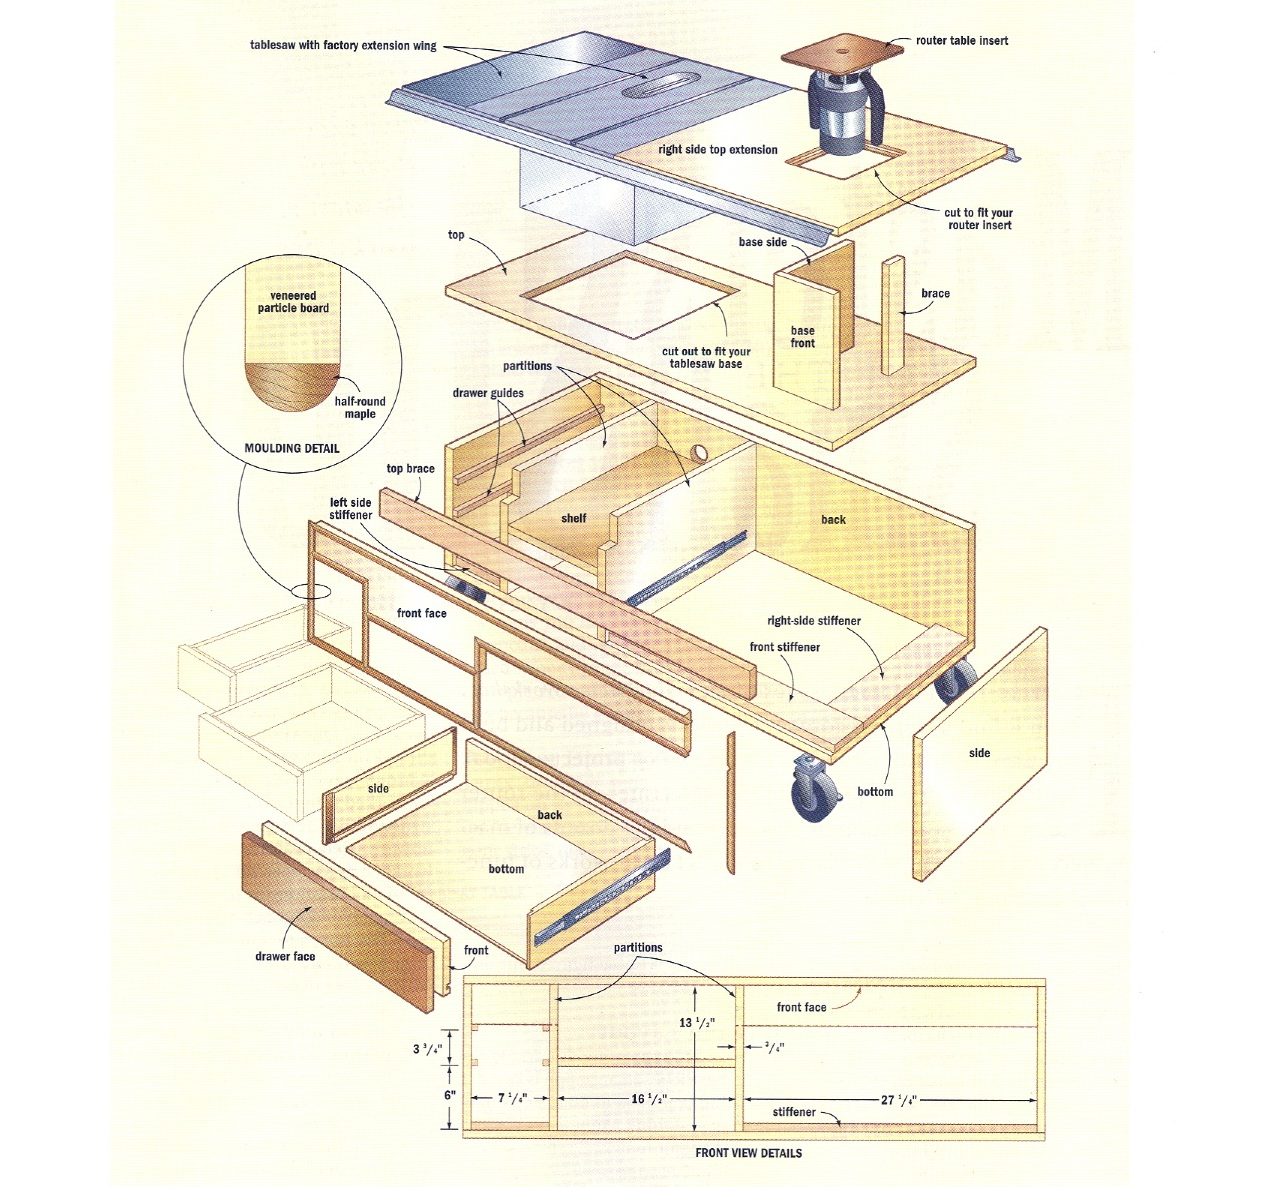 tablesaw and router workstation woodworking plans - WoodShop Plans